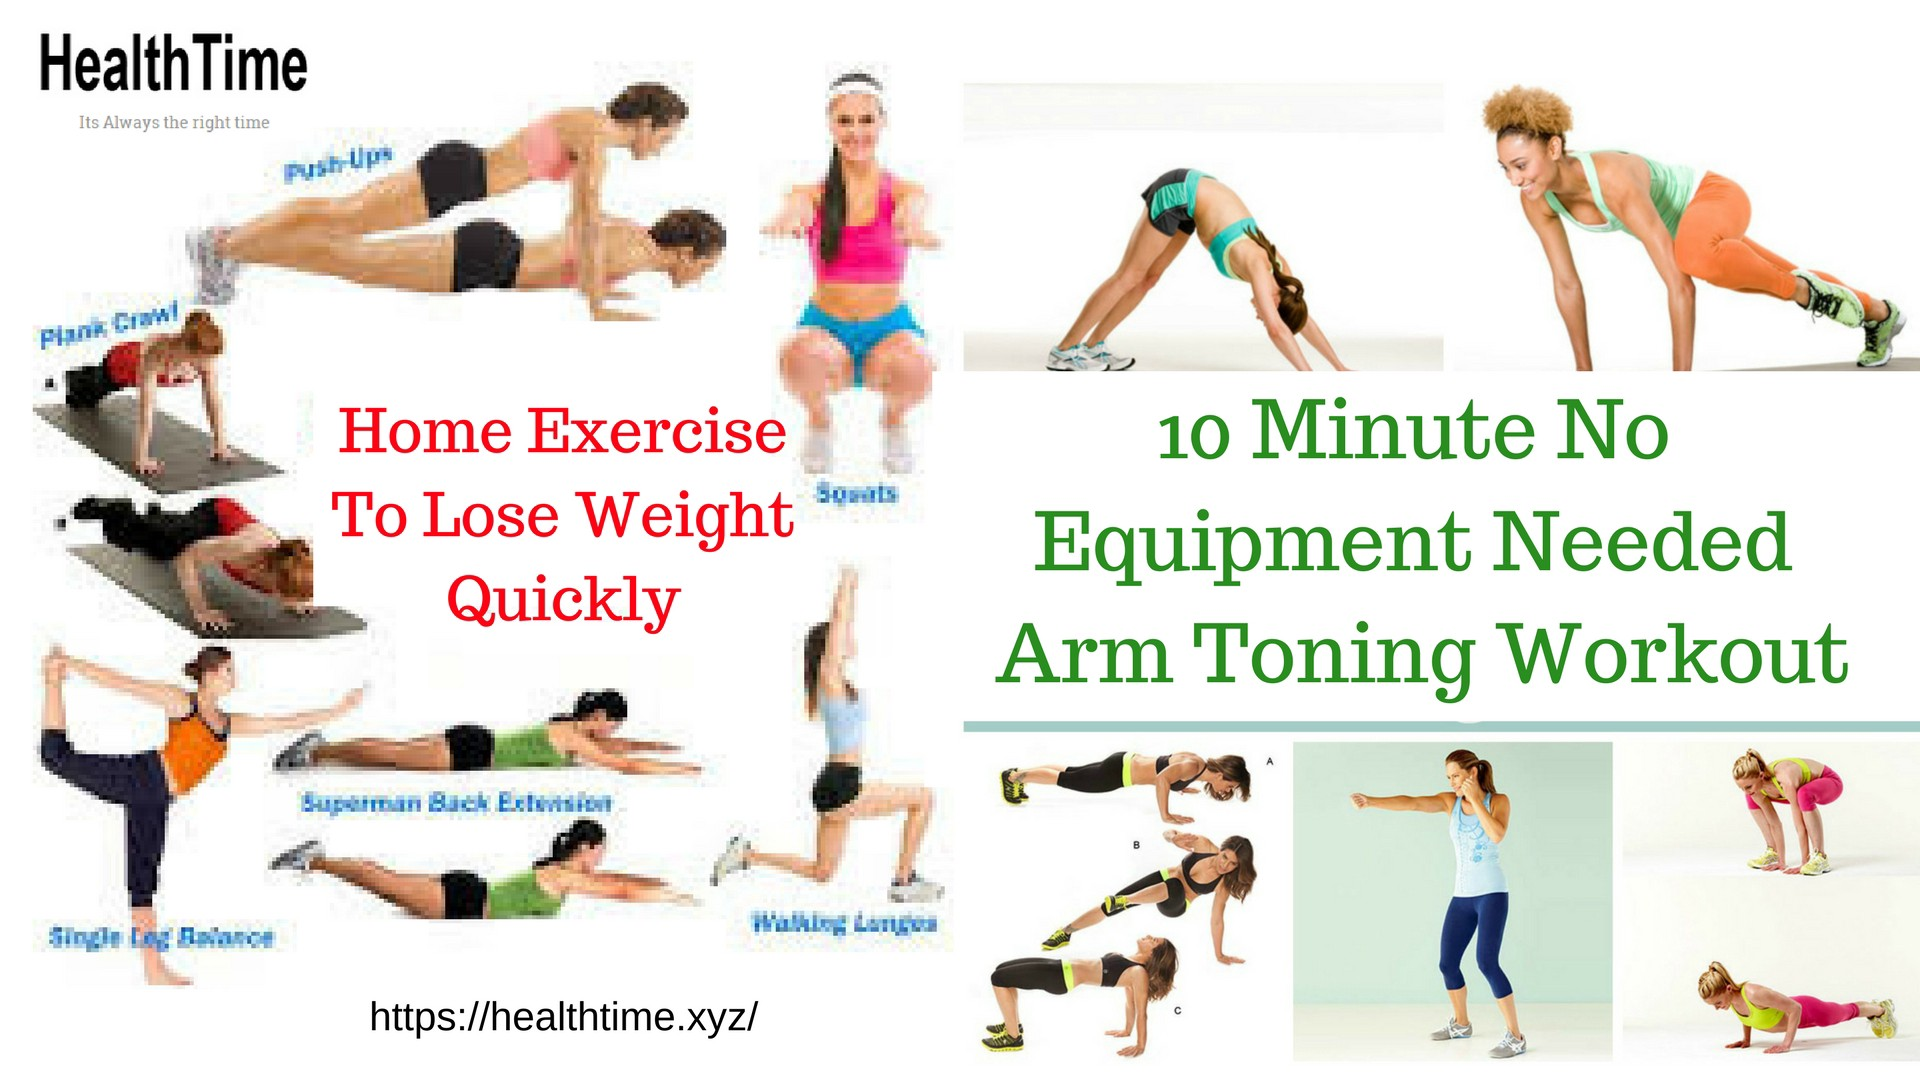 What are good exercises to lose weight at home